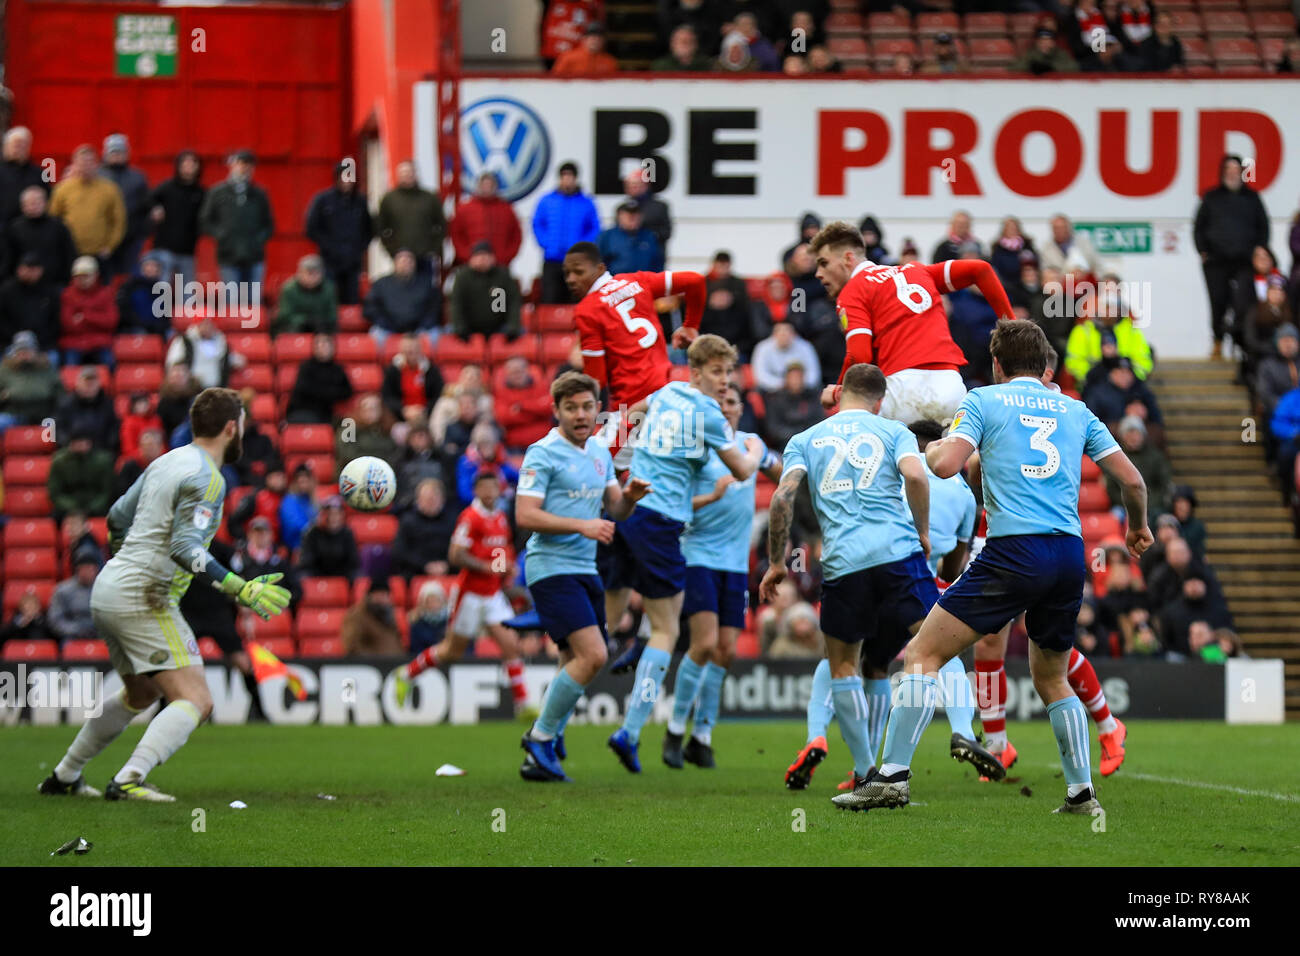 9th March 2019, Oakwell, Barnsley, England; Sky Bet League One, Barnsley vs Accrington Stanley ; Liam Lindsay (06) of Barnsley with a header on goal   Credit: John Hobson/News Images  English Football League images are subject to DataCo Licence - Stock Image